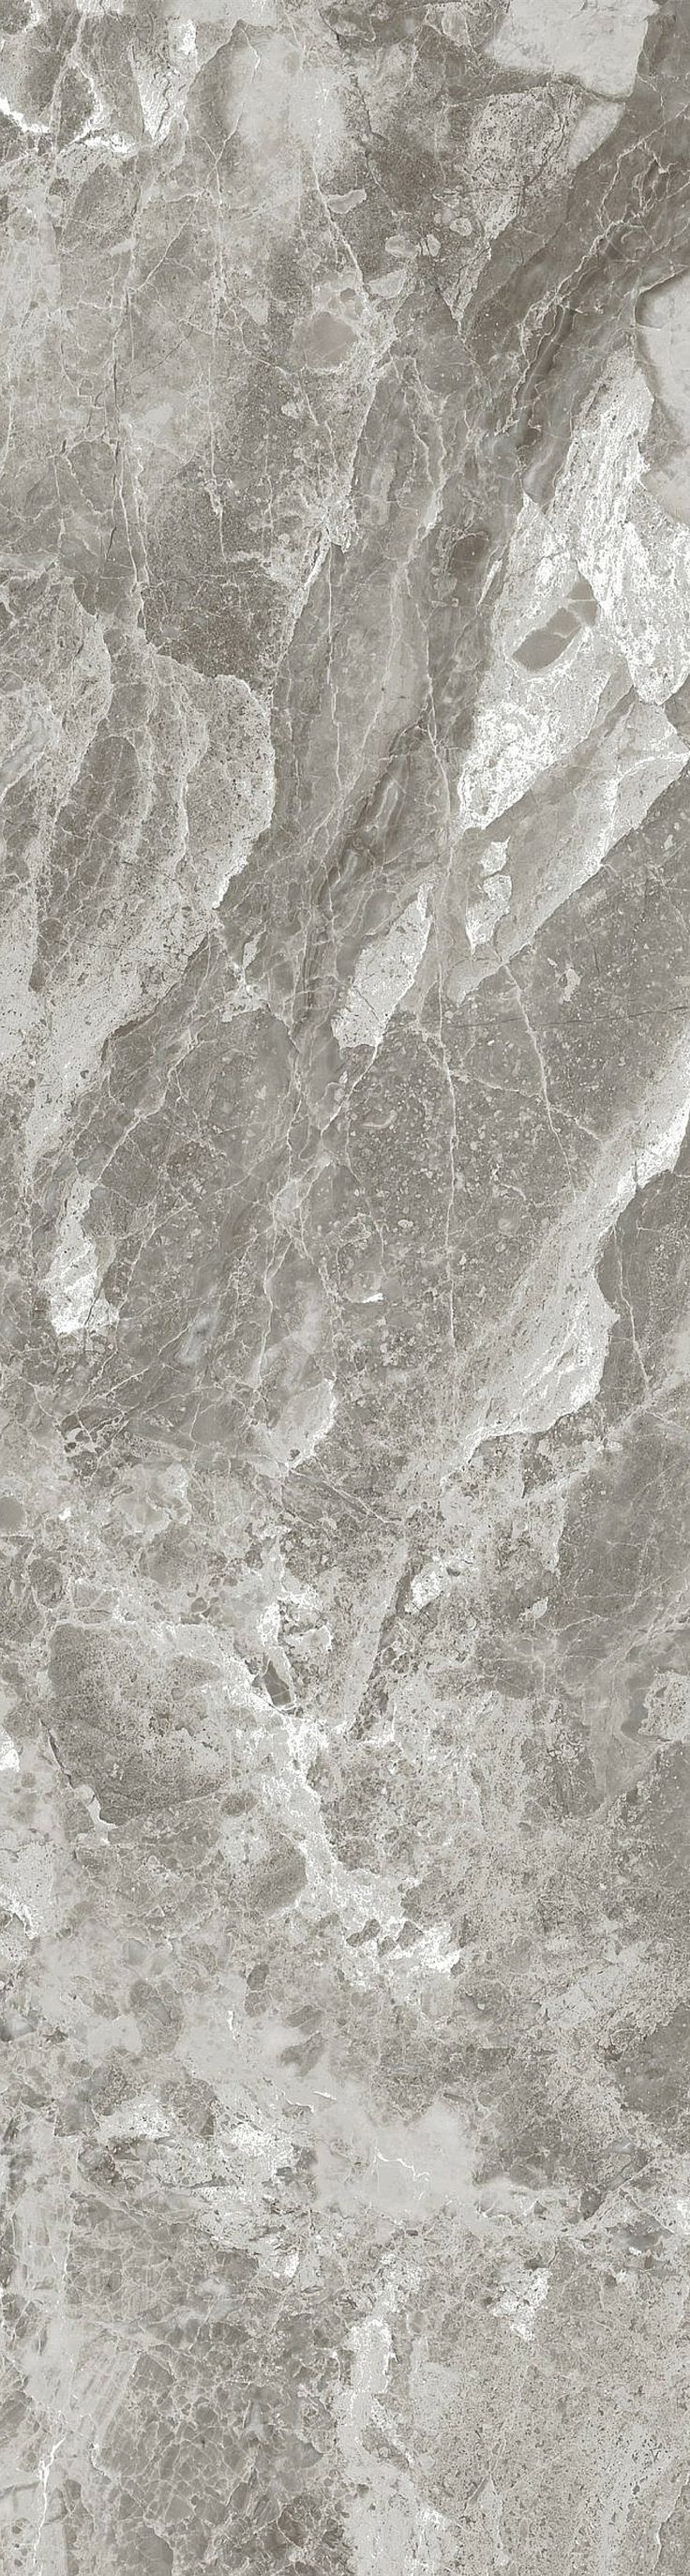 Porcelain Tile | Marble Look Classic Bardiglietto…                                                                                                                                                                                 More